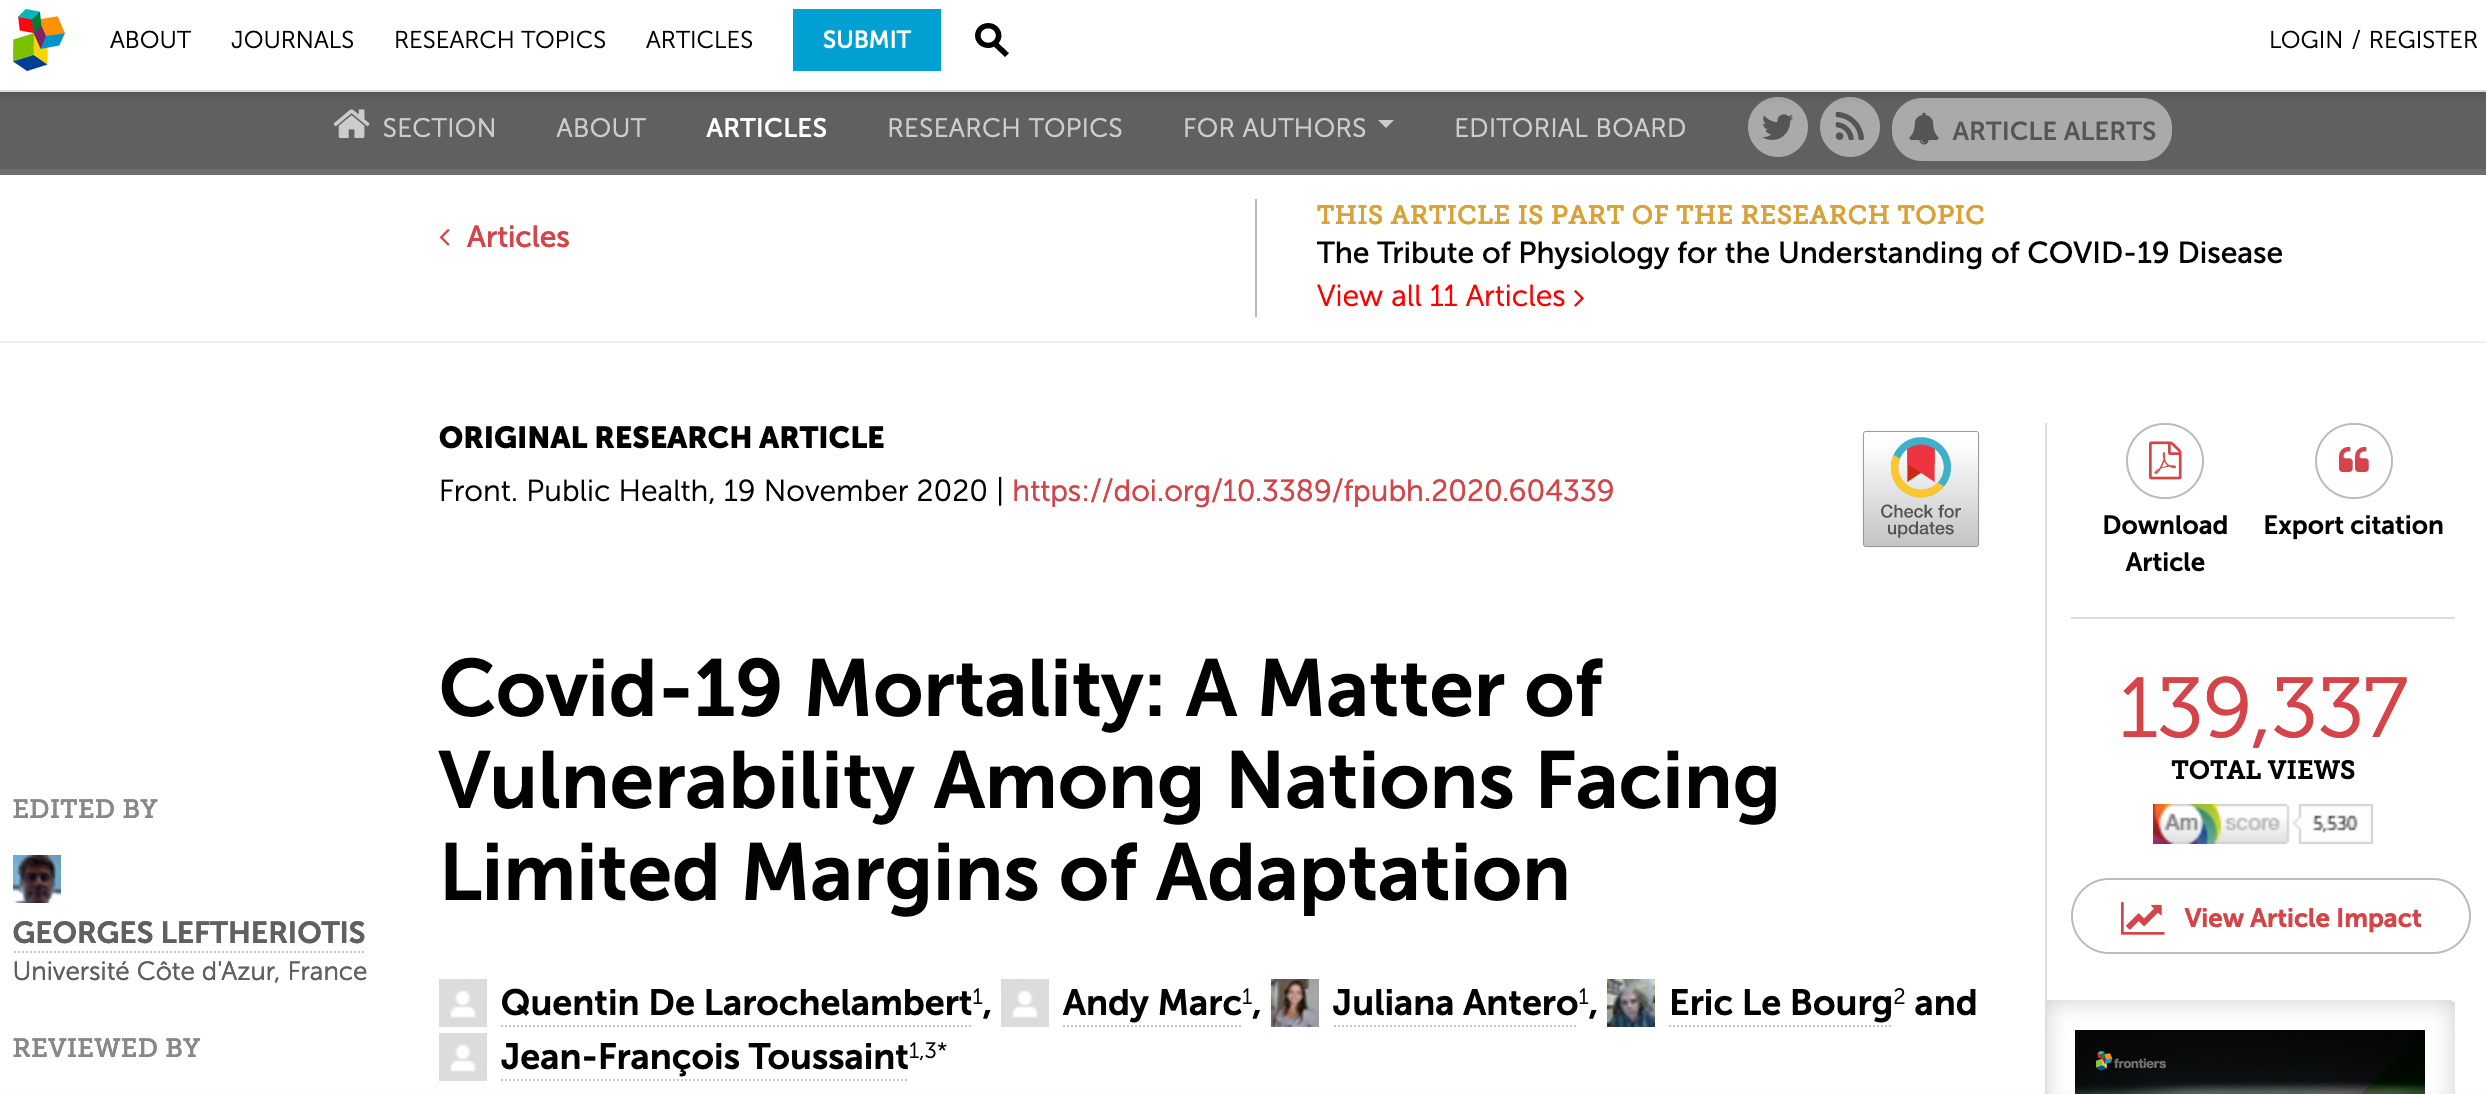 Covid-19 Mortality: A Matter of Vulnerability Among Nations Facing Limited Margins of Adaptation